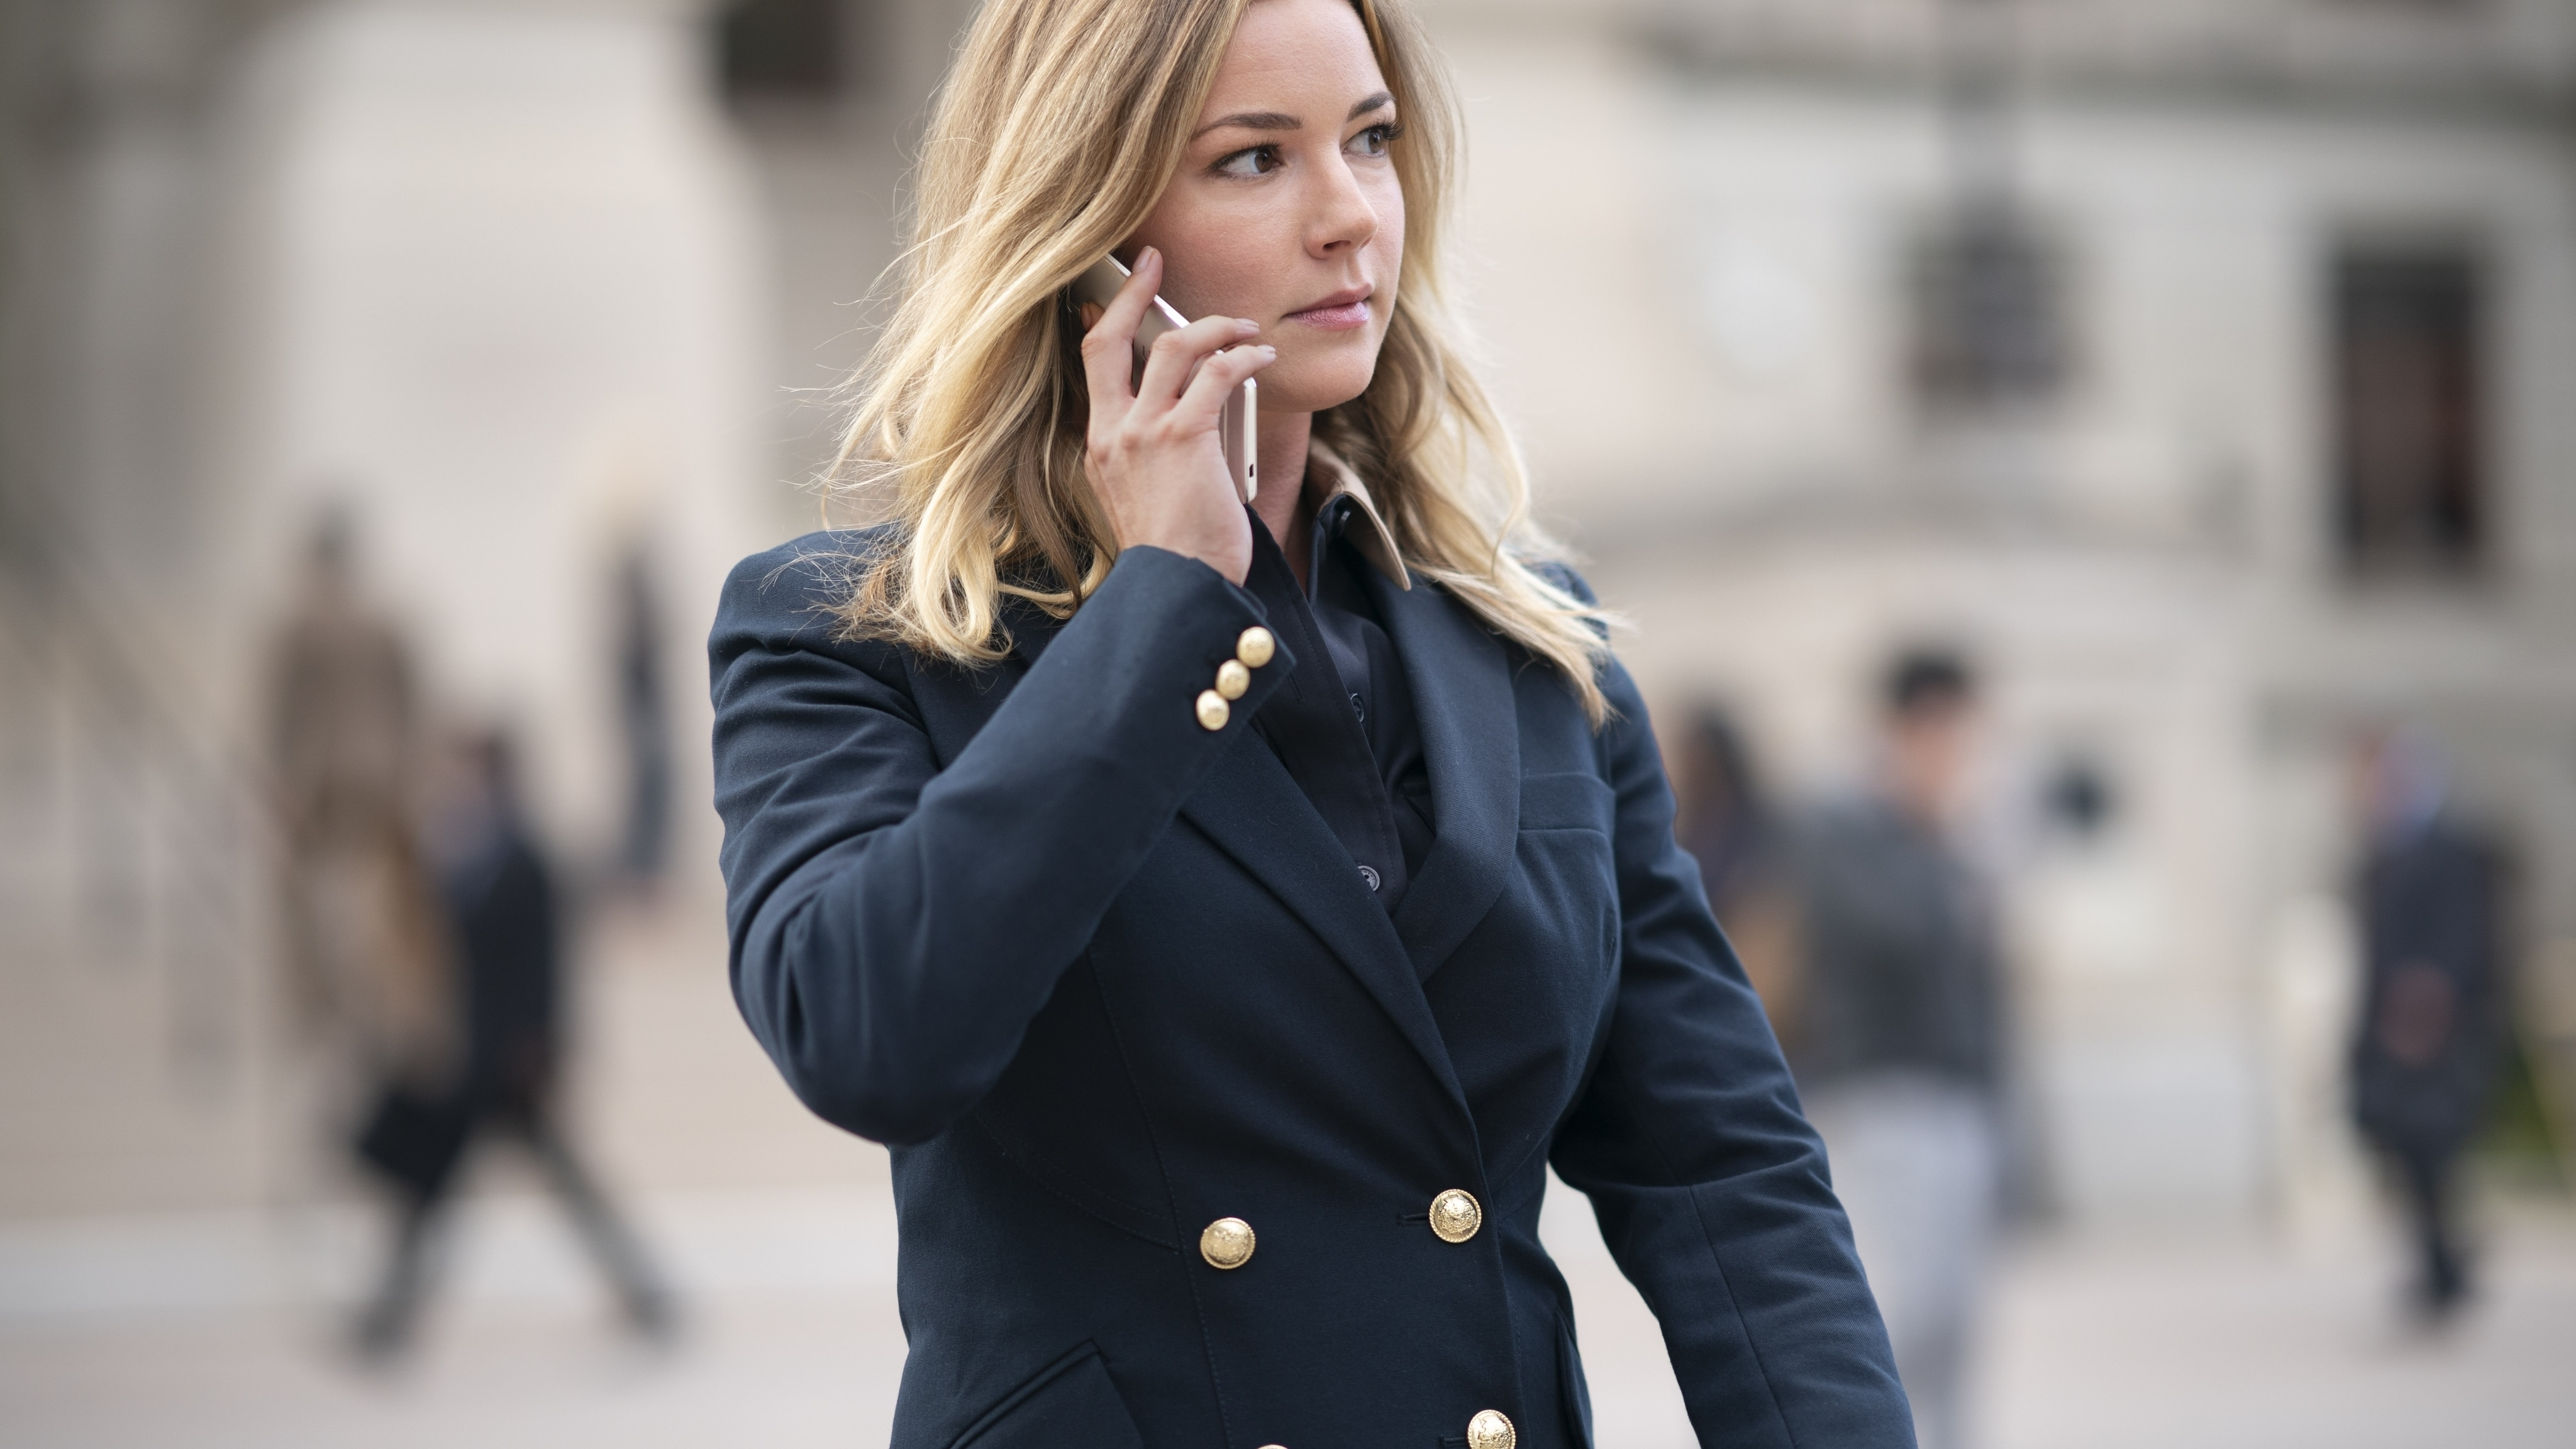 Sharon Carter/Agent 13 (Emily VanCamp) in Marvel Studios' THE FALCON AND THE WINTER SOLDIER exclusively on Disney+. Photo by Eli Adé. ©Marvel Studios 2021. All Rights Reserved.